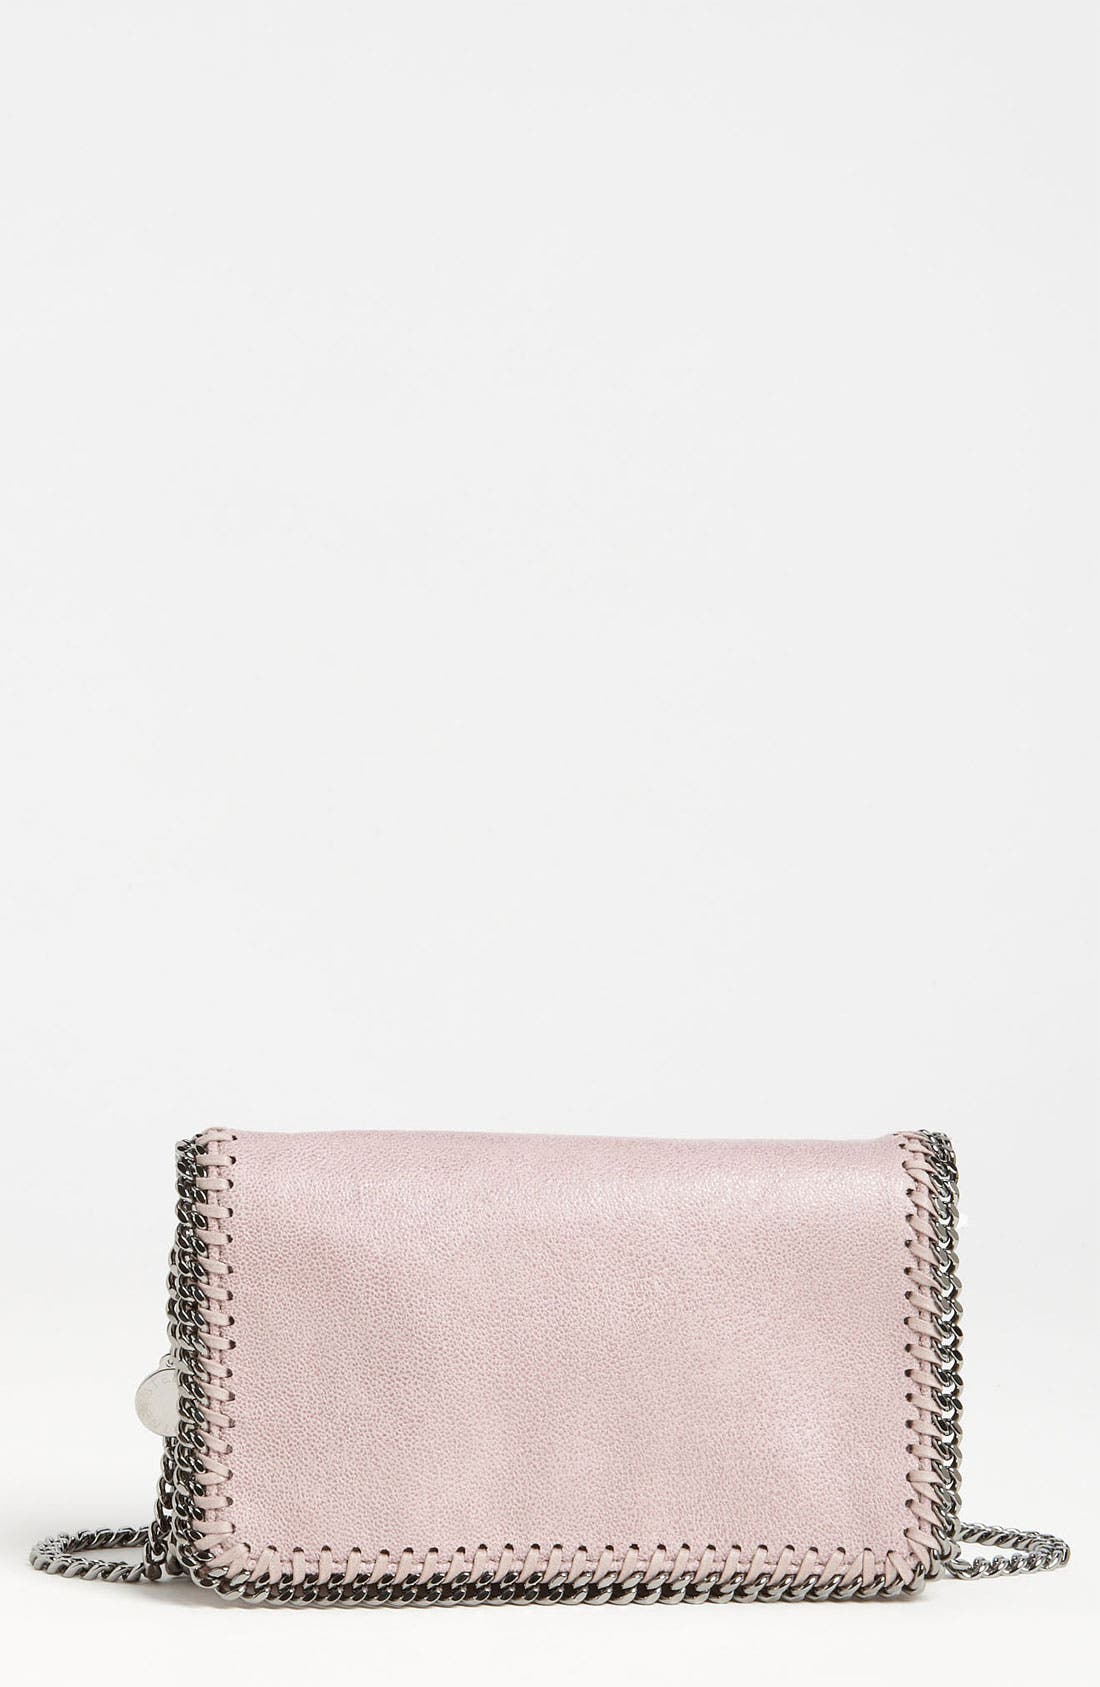 Main Image - Stella McCartney 'Falabella' Shaggy Deer Crossbody Bag